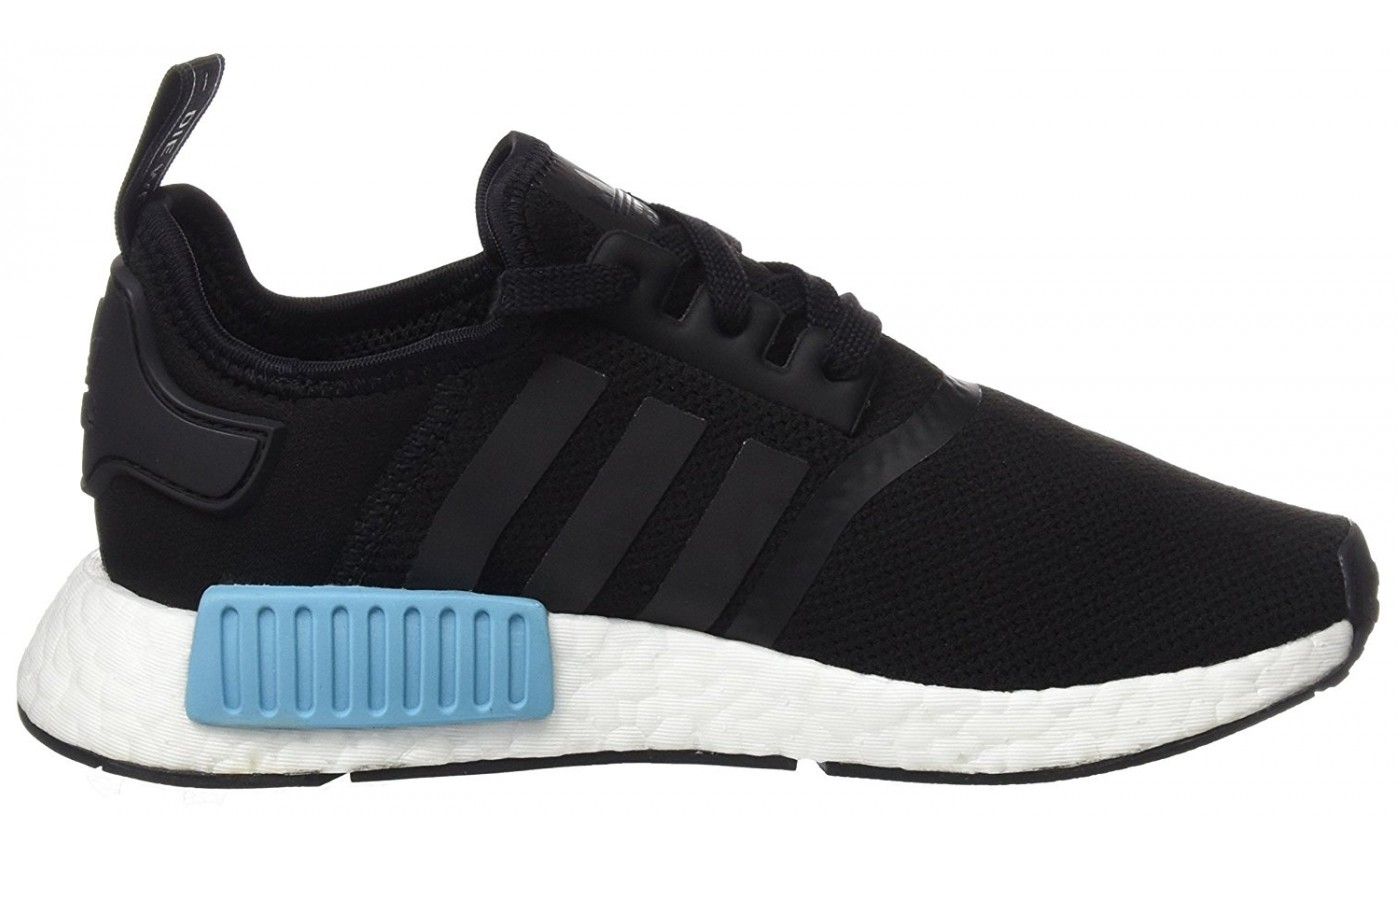 46e613aa1610 Adidas NMD R1 Reviewed   Tested for Performance in 2019